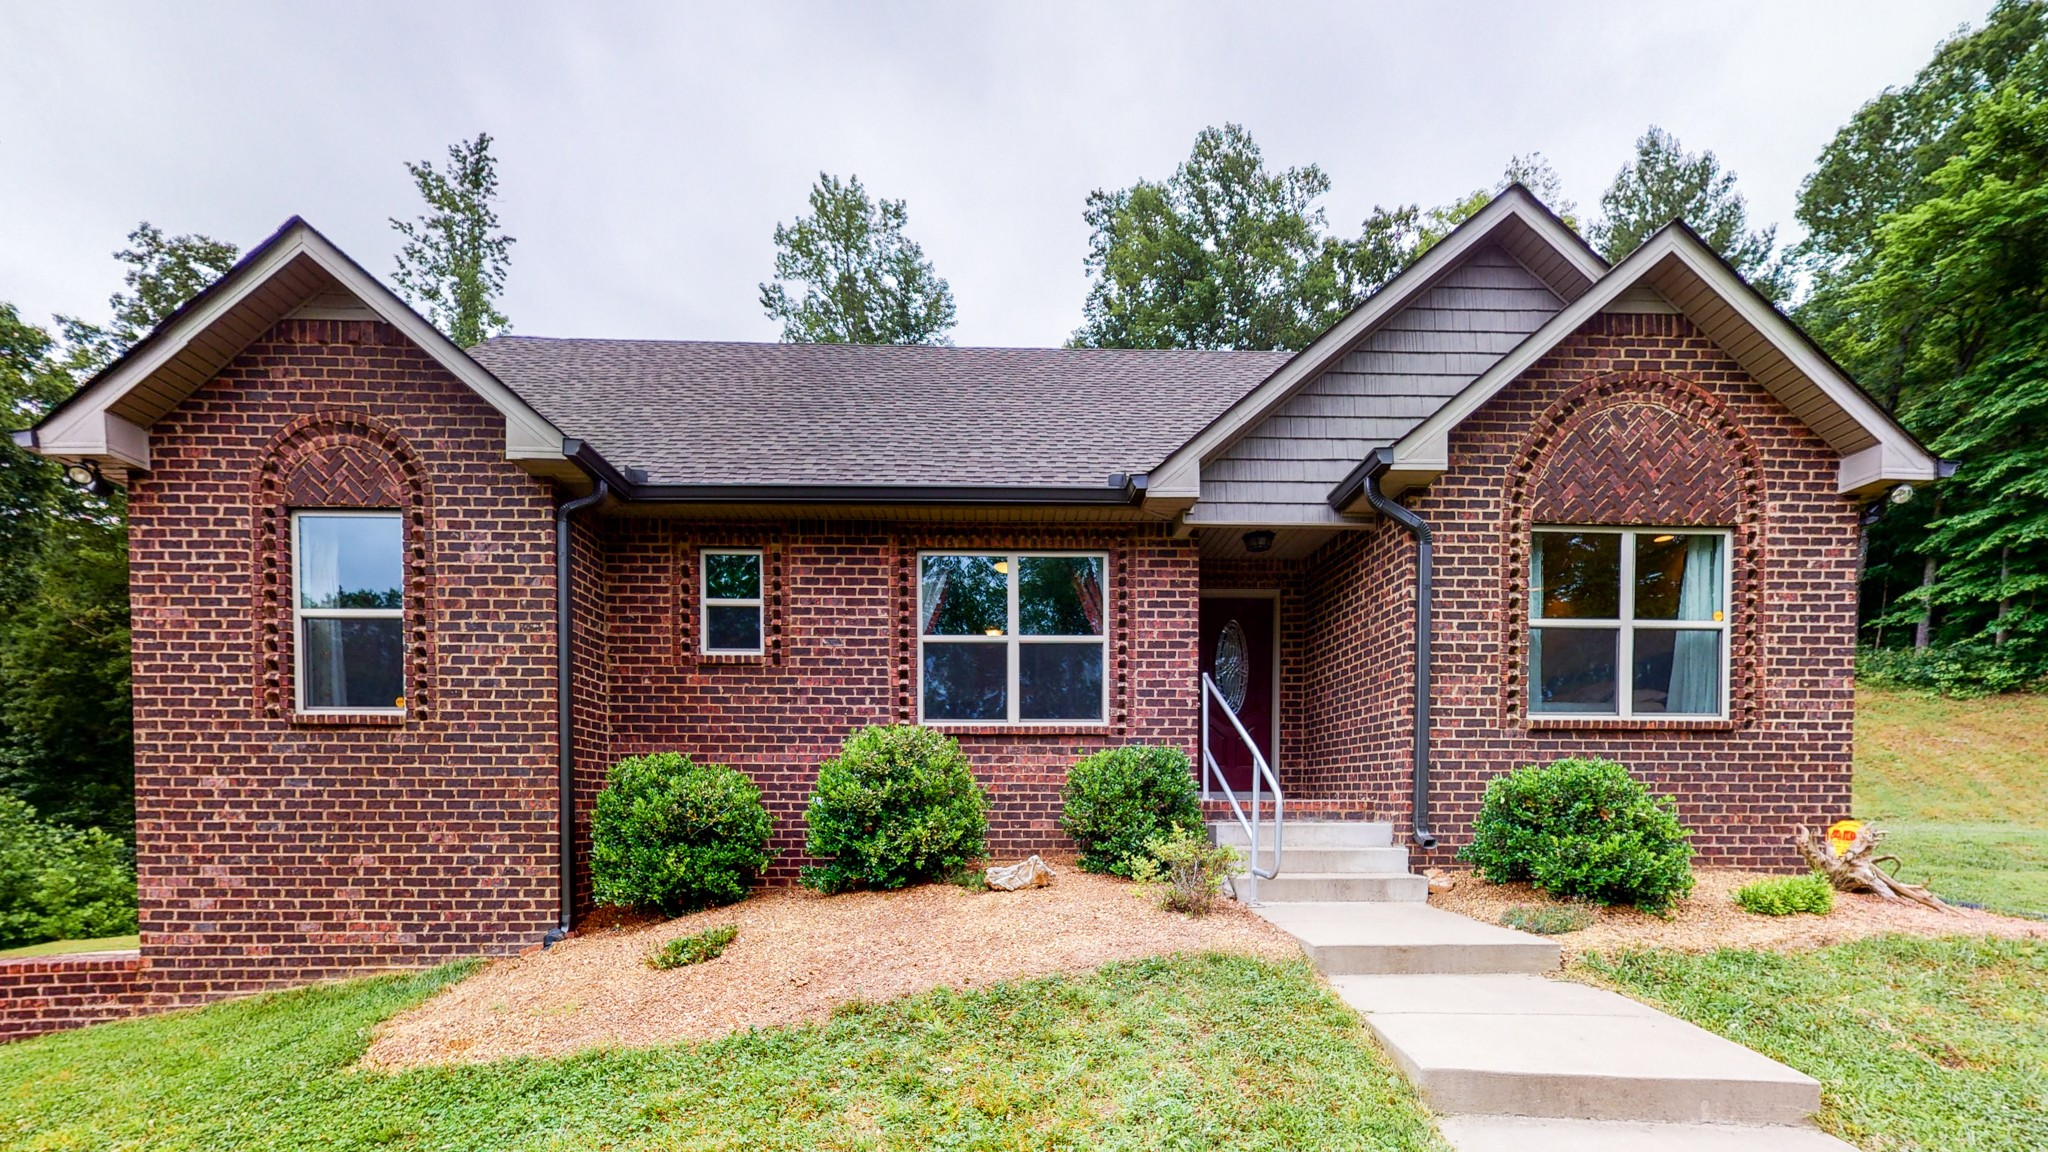 975 Attaway Rd Property Photo - Clarksville, TN real estate listing